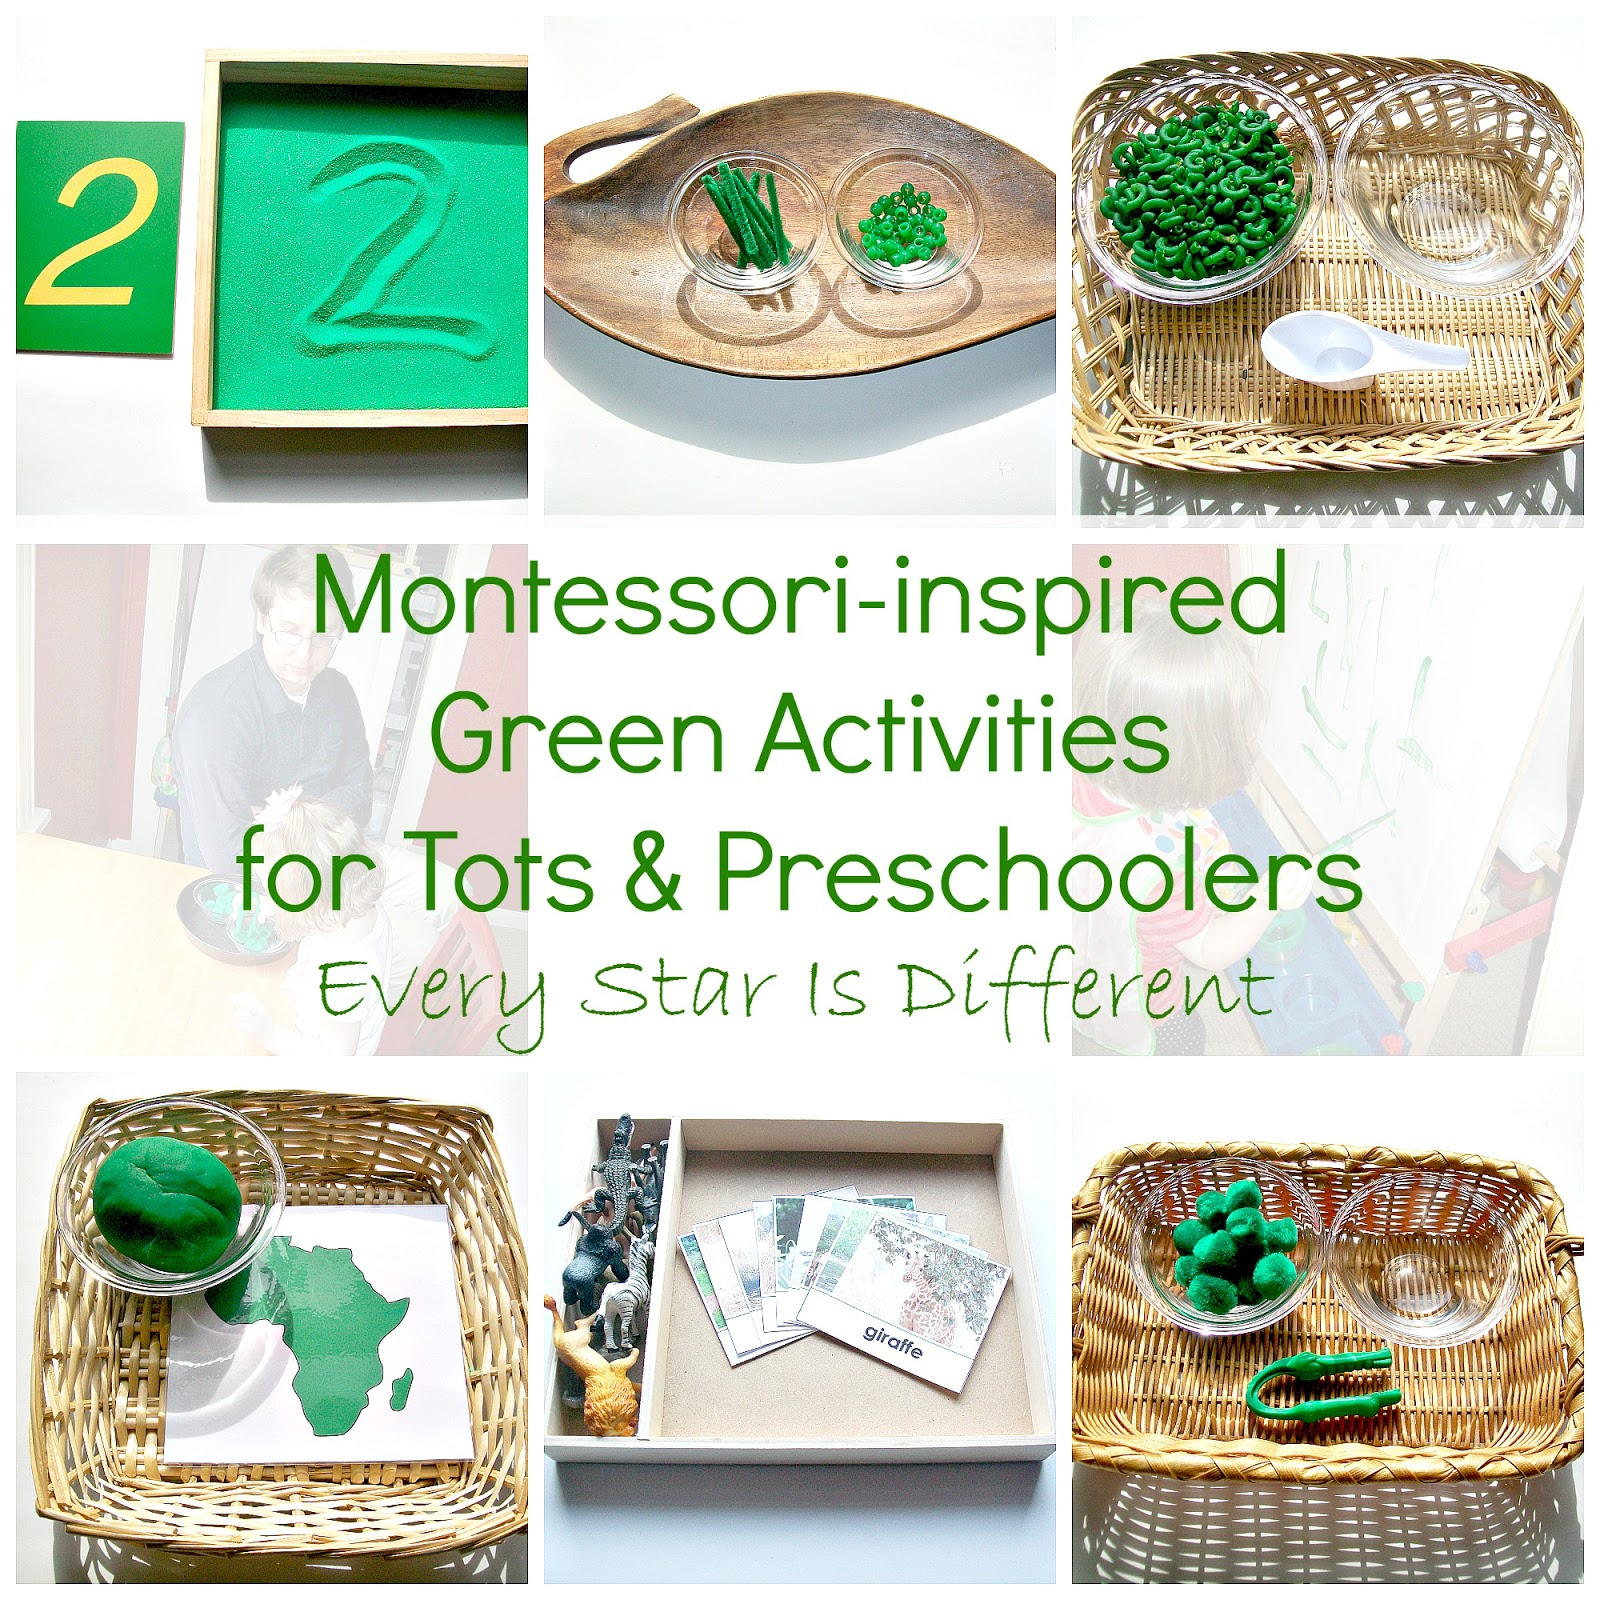 Every Star Is Different Activities Amp Free Printables For Tots Amp Preschoolers